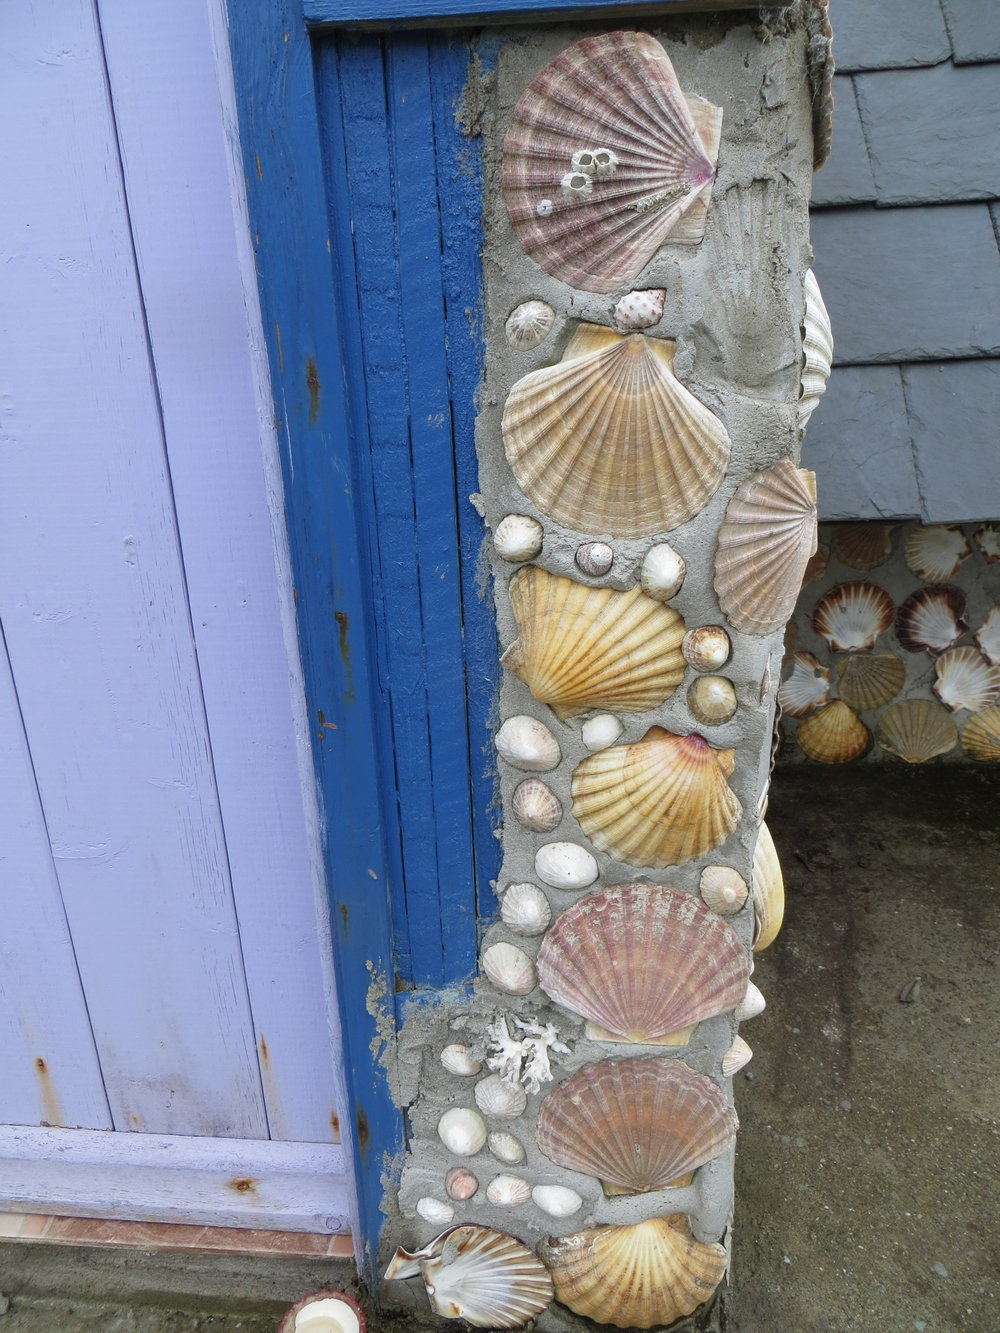 At the entrance of her shell house is this sculpture